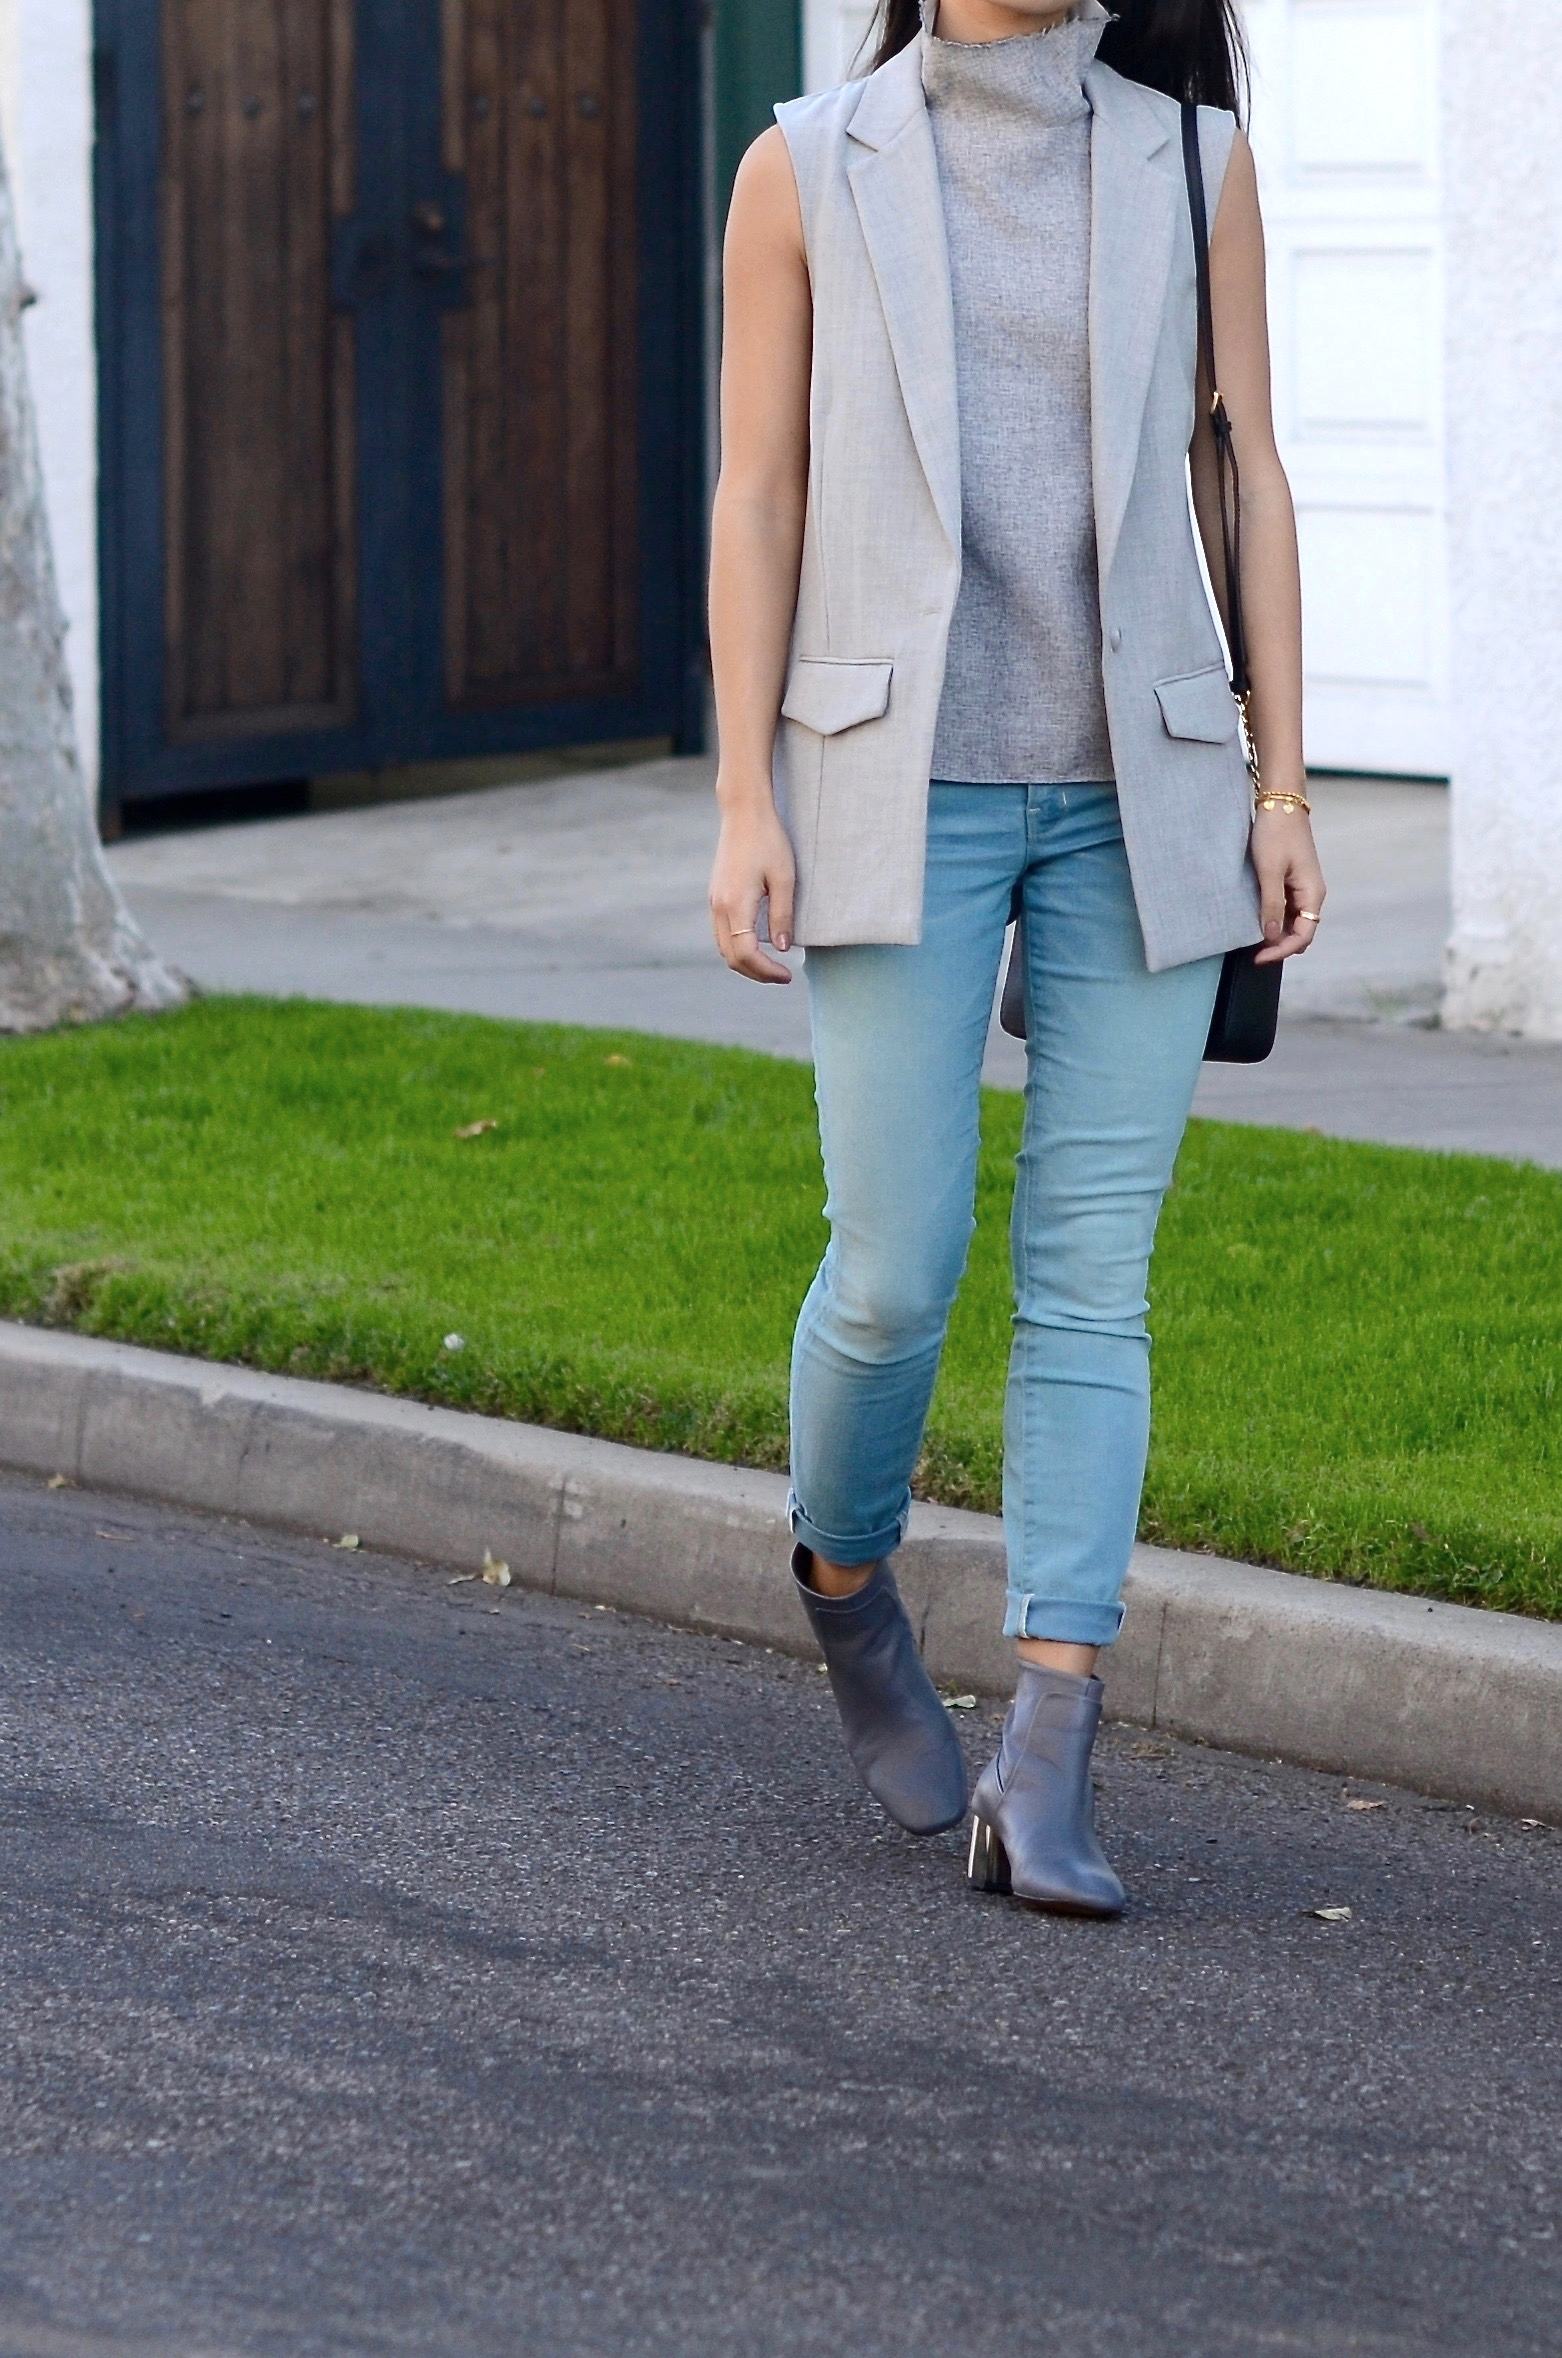 Just Goh With It-los-angeles-fashion-style-blogger-Outfit-sleeveless-blazer-mock-neck-top-1.jpg